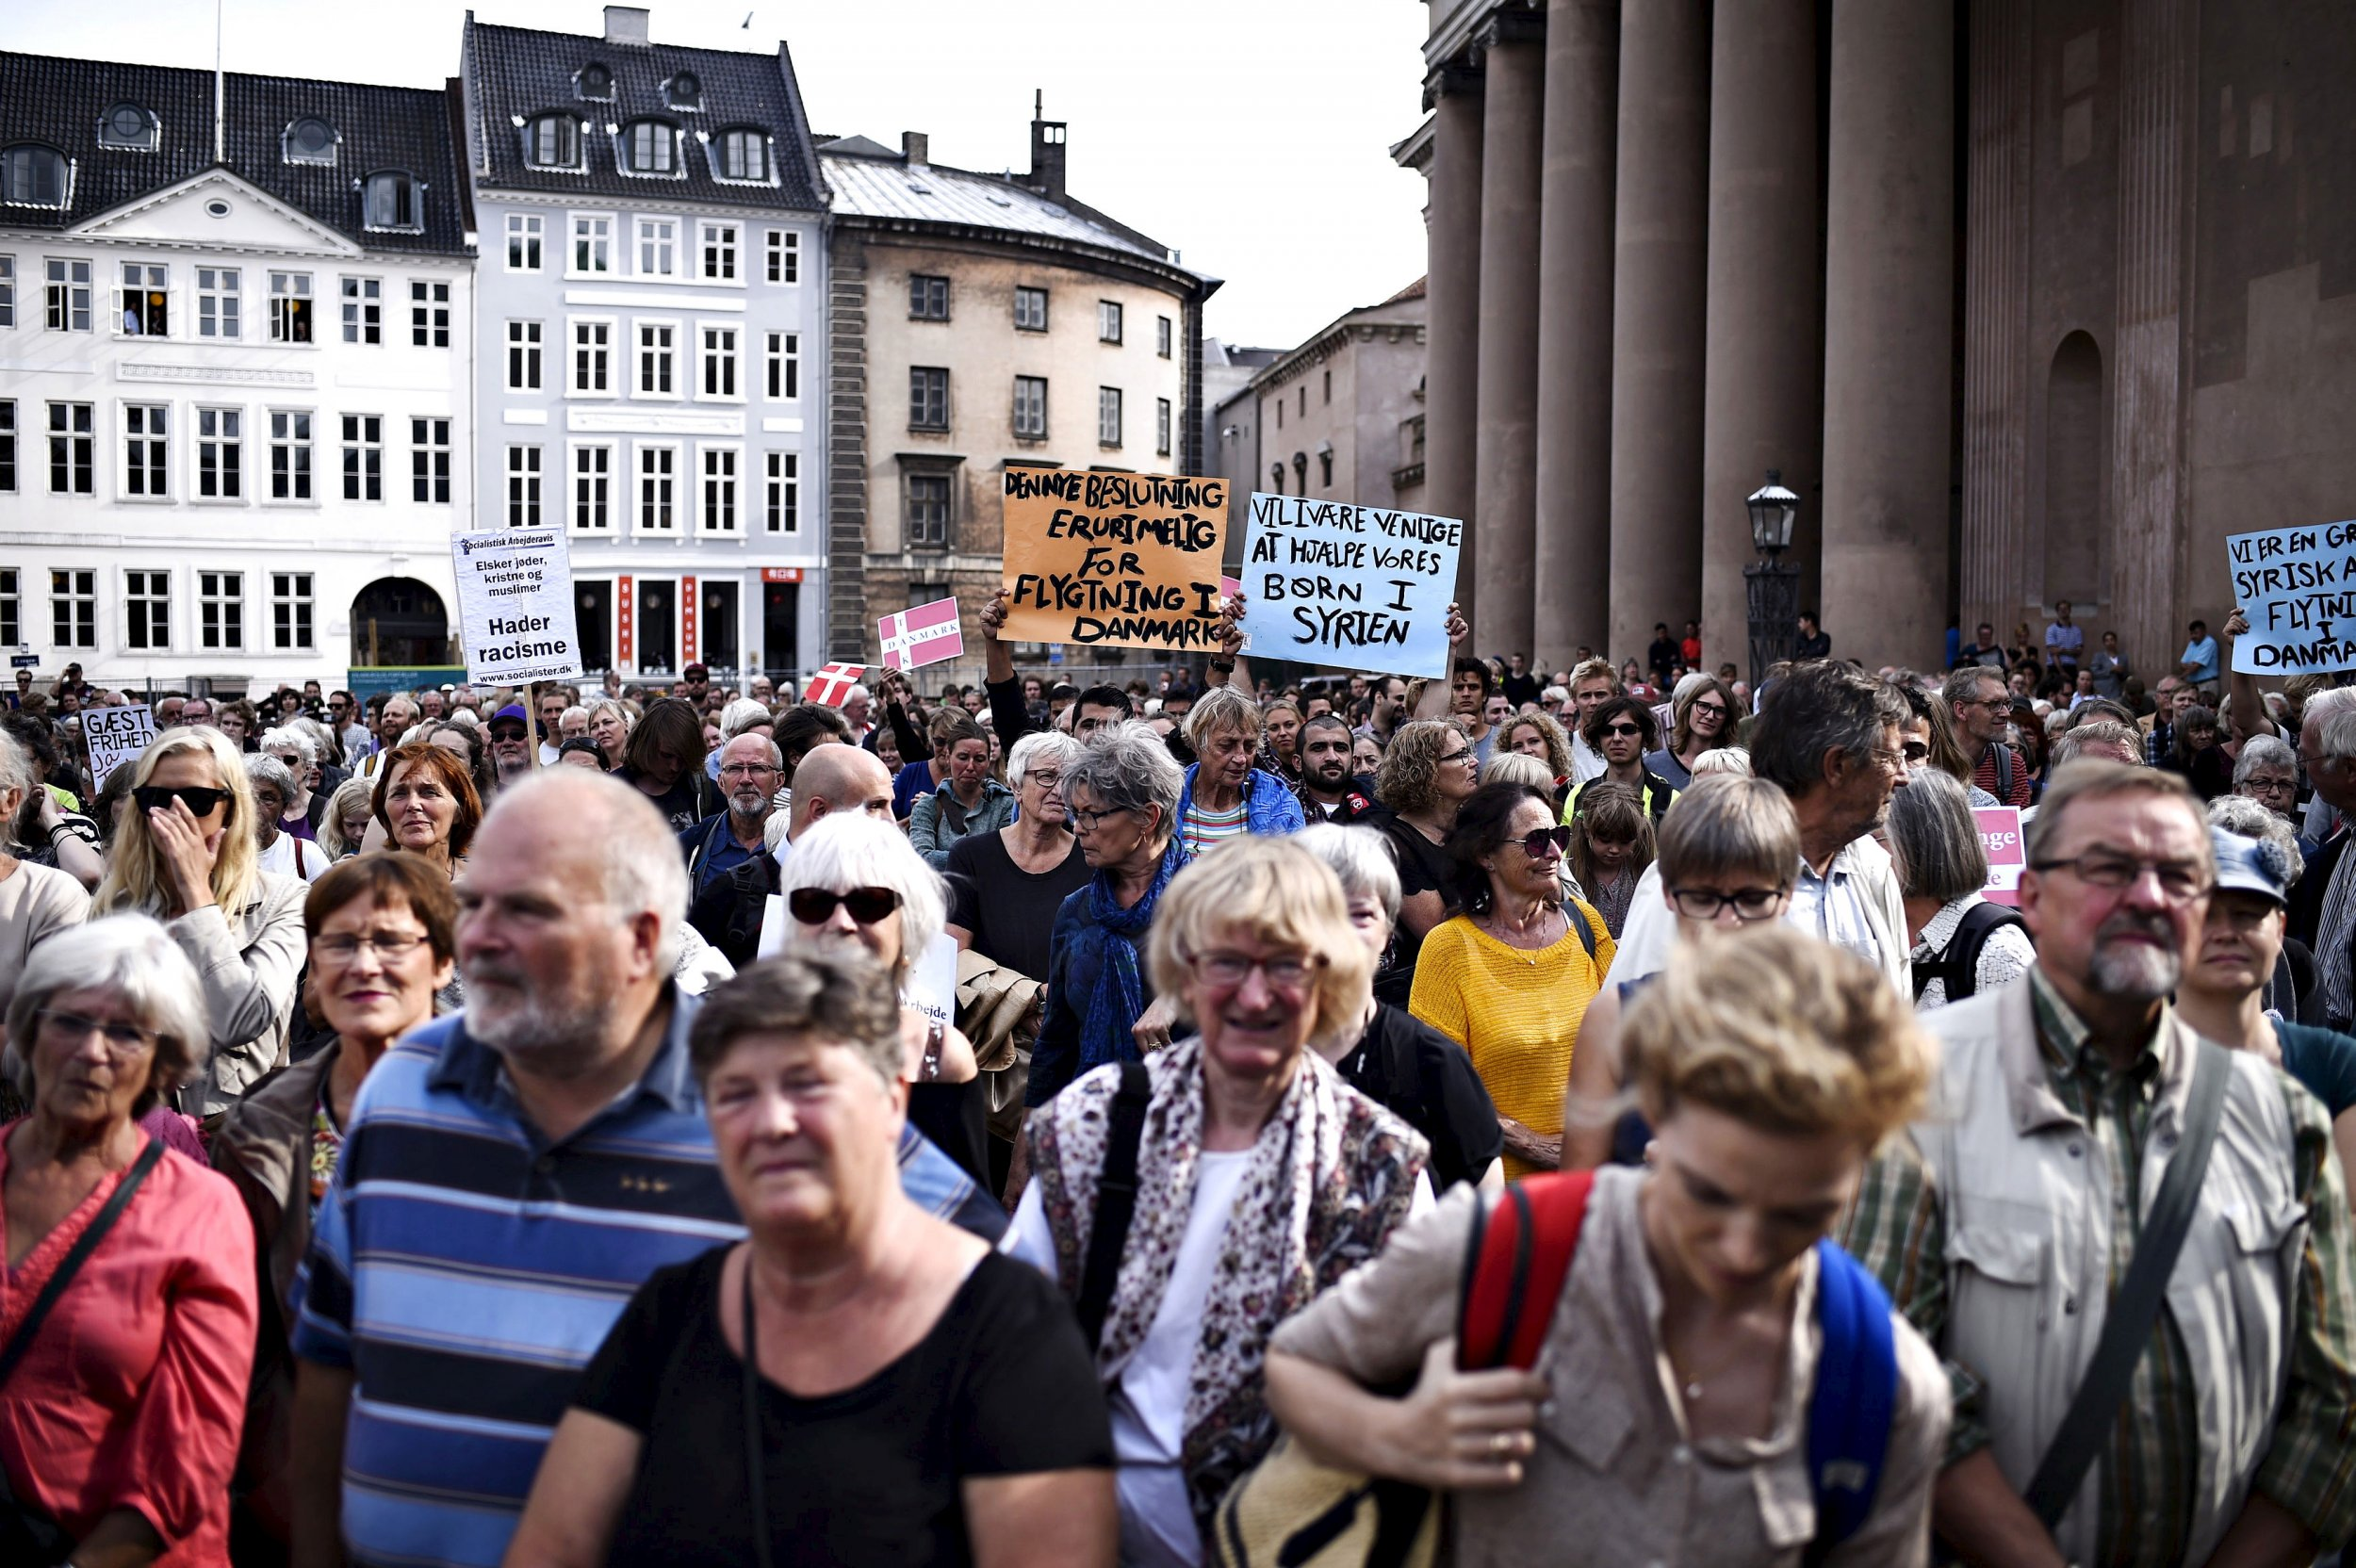 9-7-15 Denmark demonstration